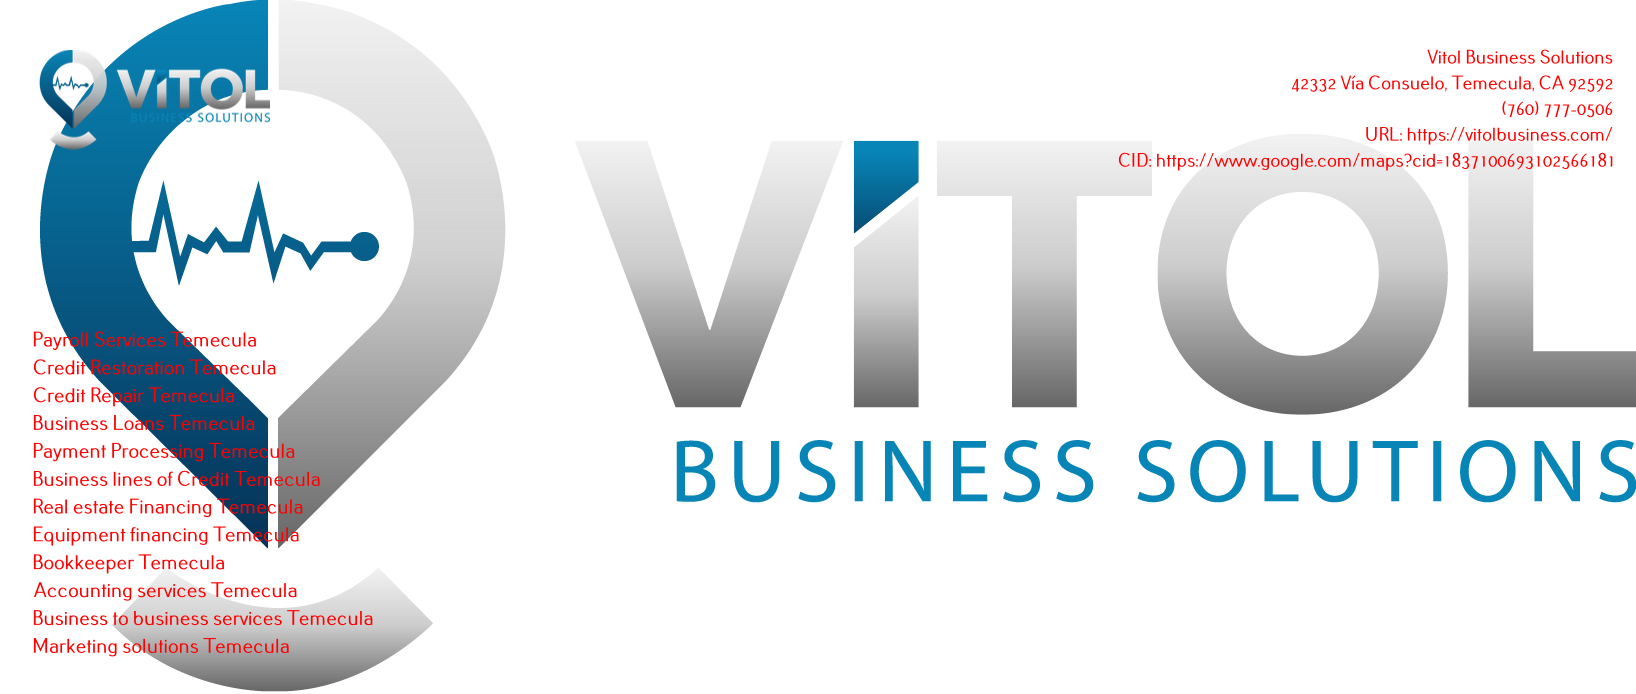 Vitol Business Solutions